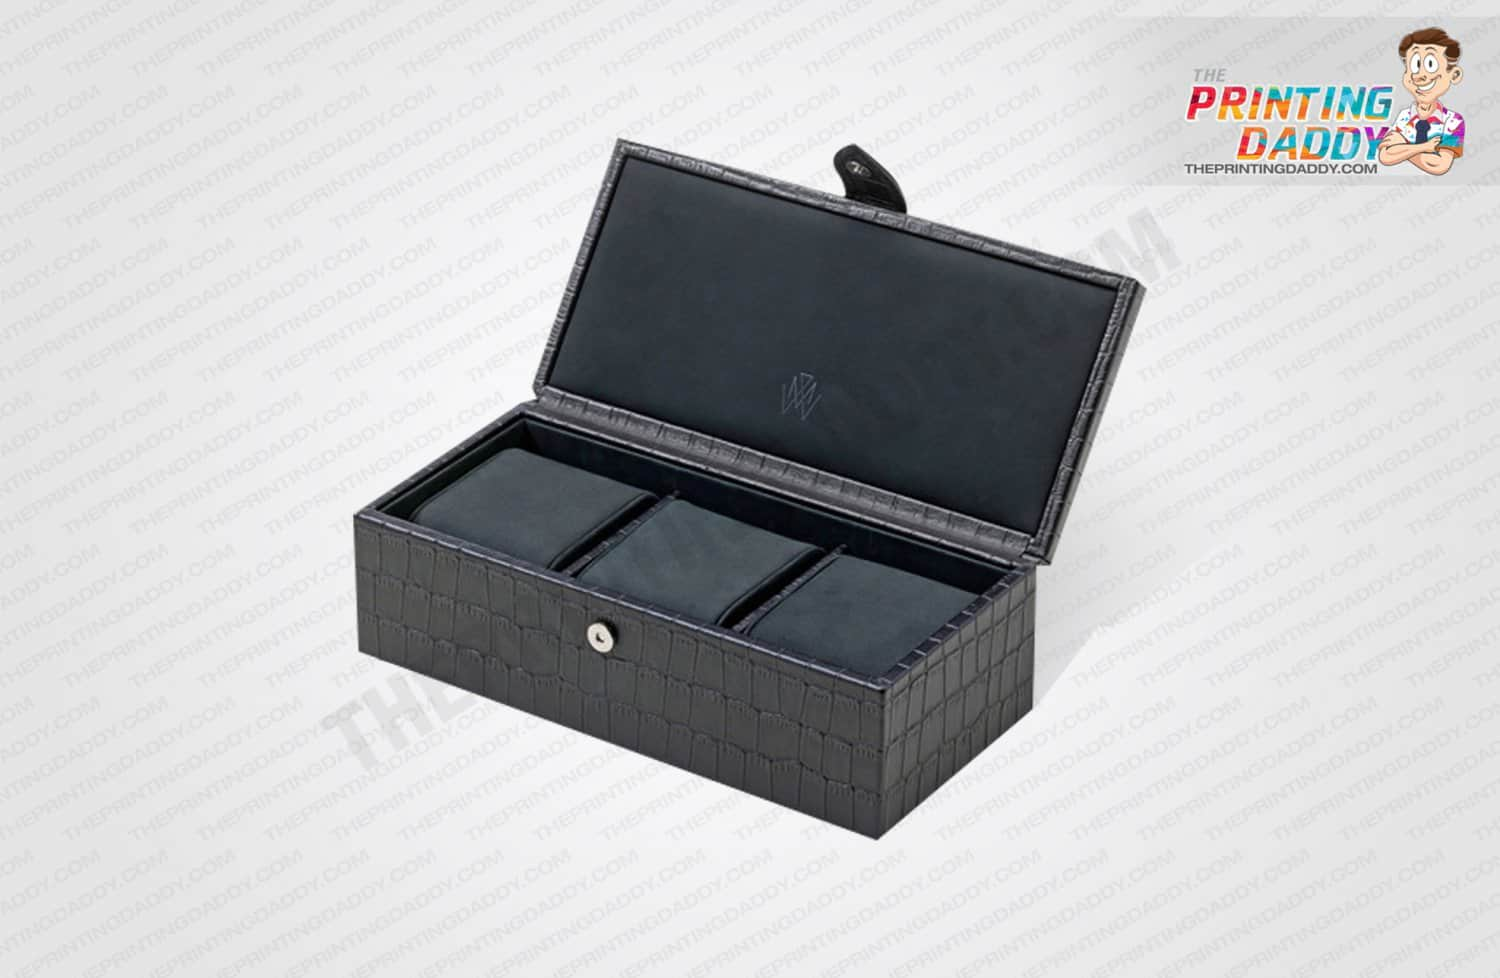 Black & White Texture Watch Box The Printing Daddy